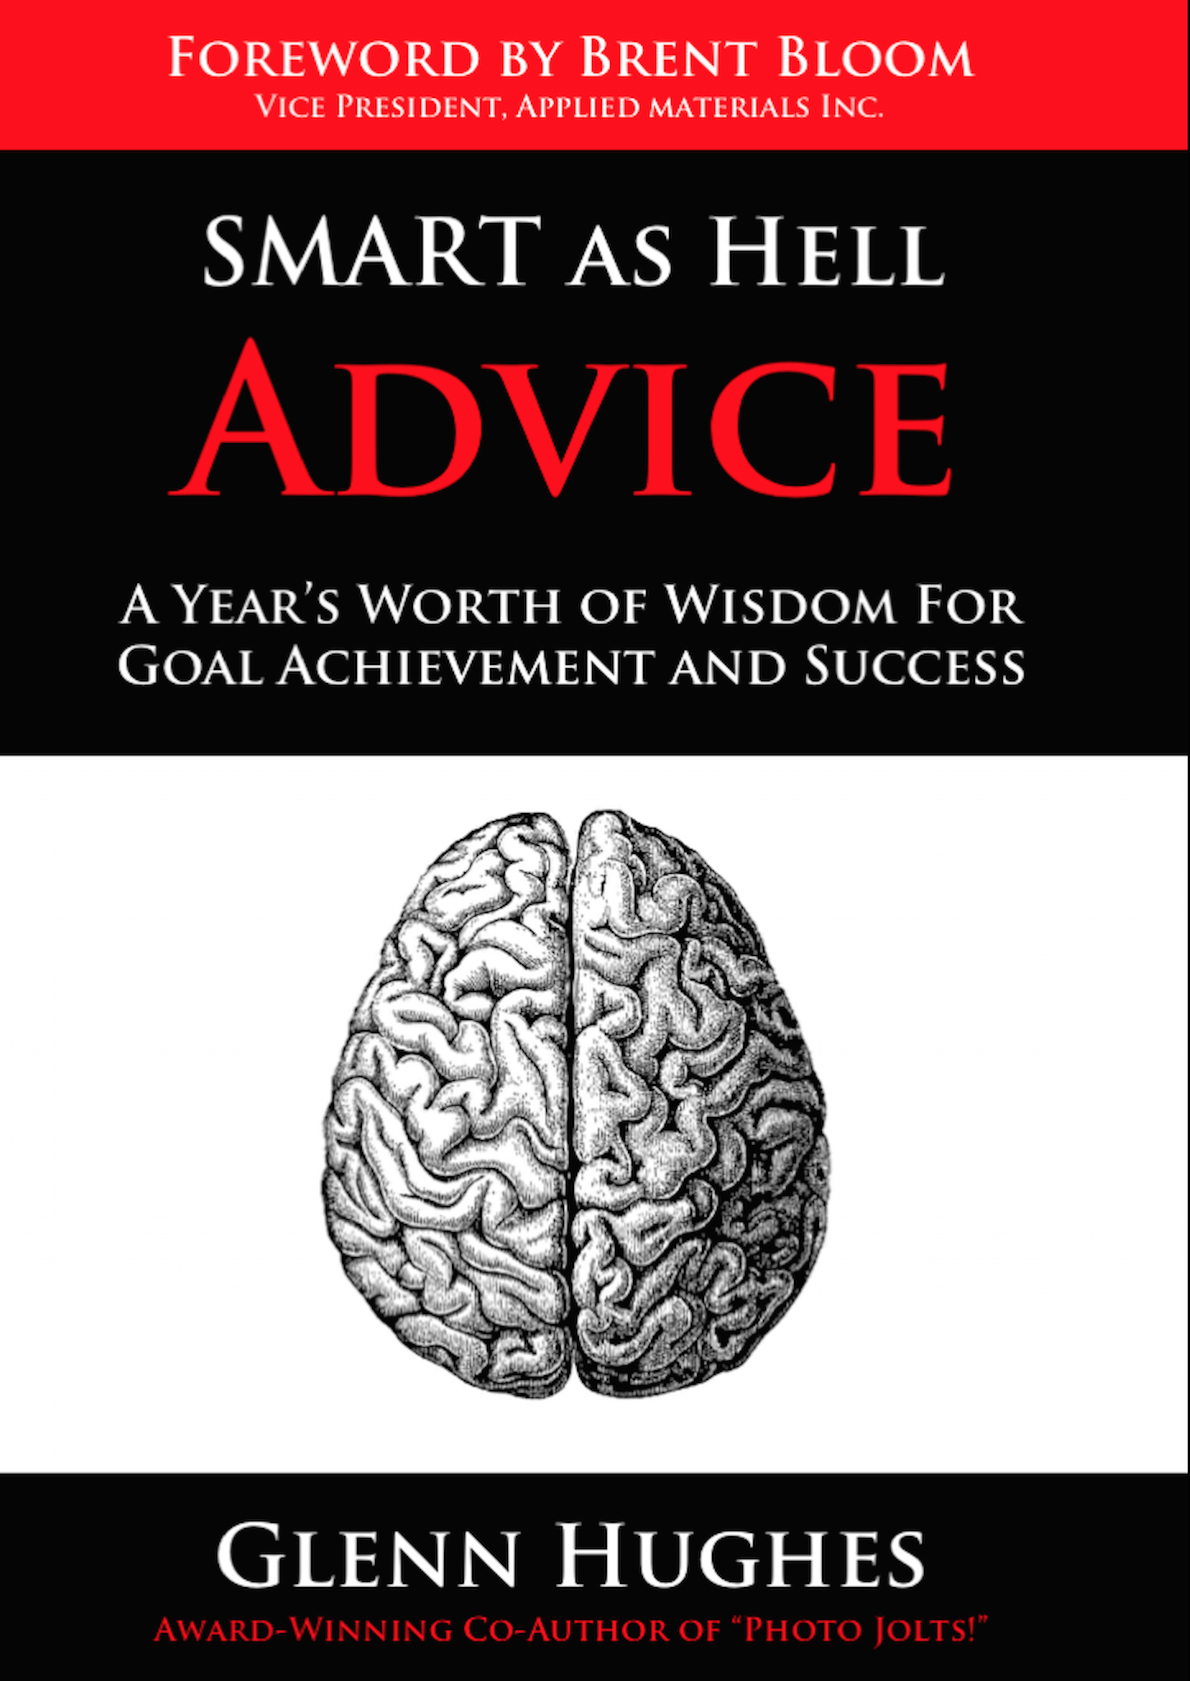 Front Cover for SMART as Hell Advice by Glenn Hughes